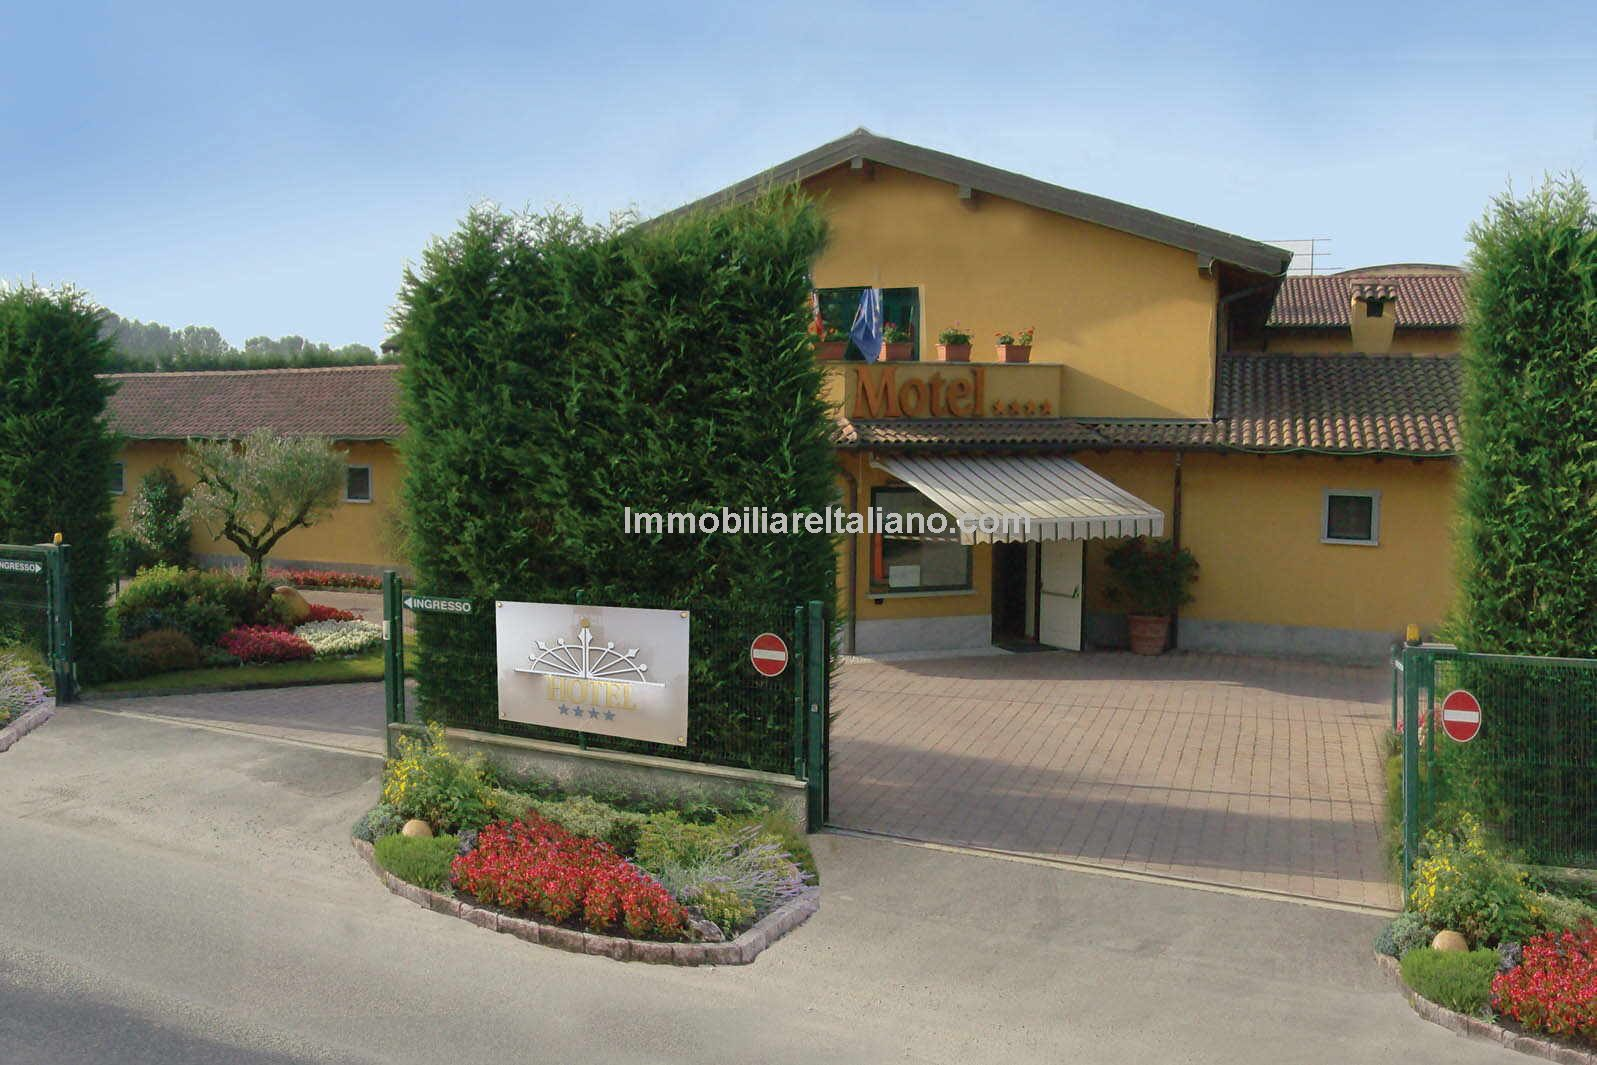 Hotel For Sale Near Milan